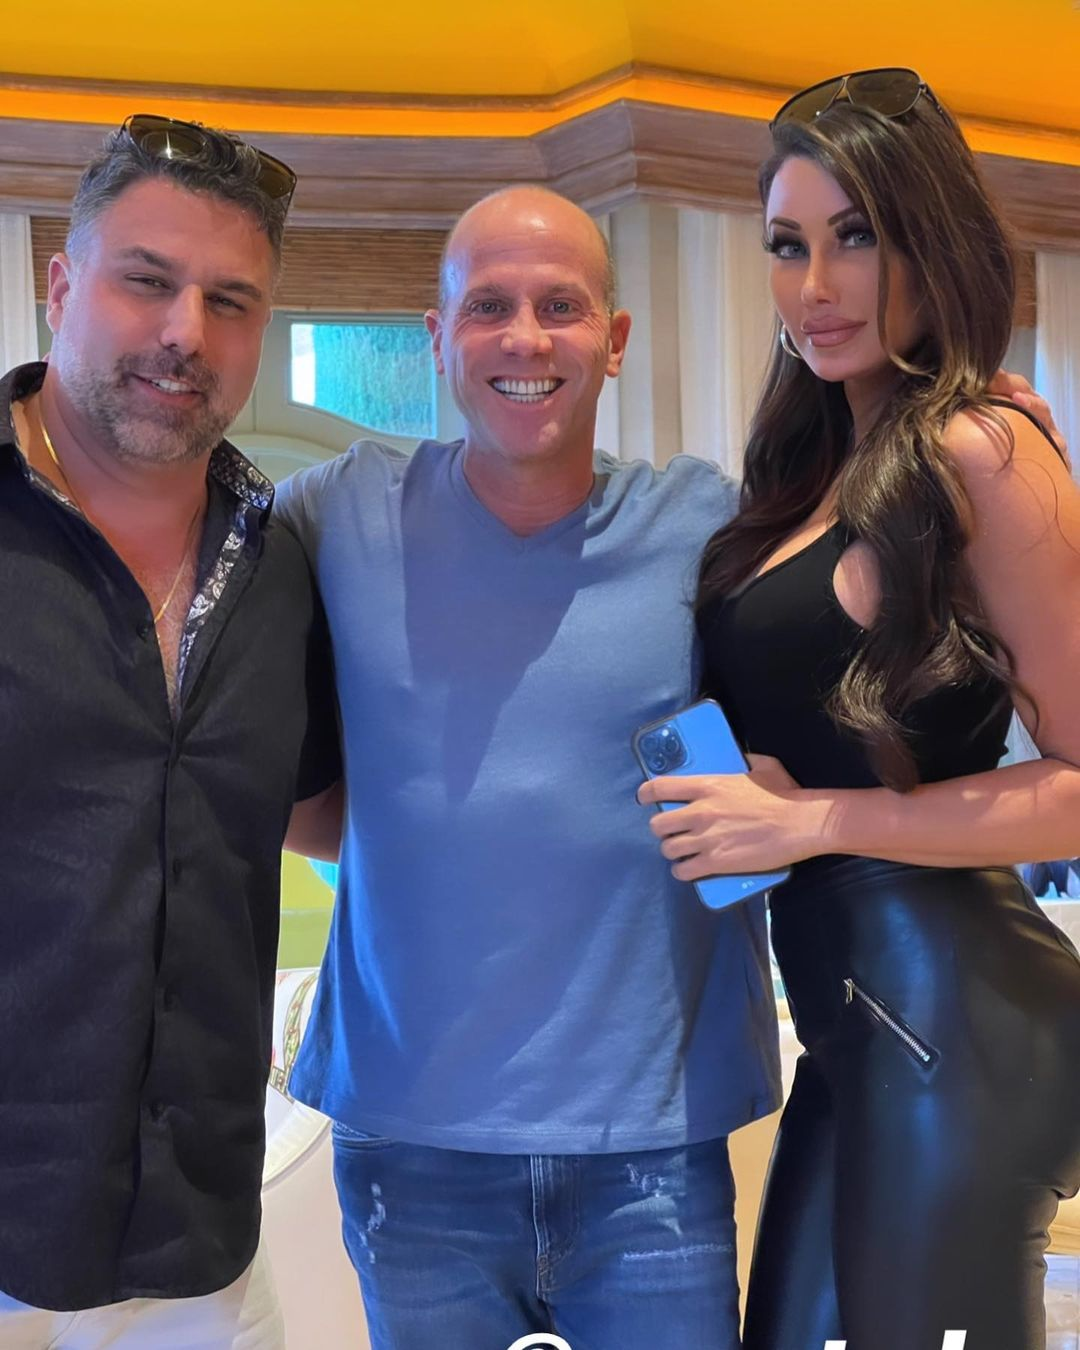 Holly Sonders instagram details are great 3